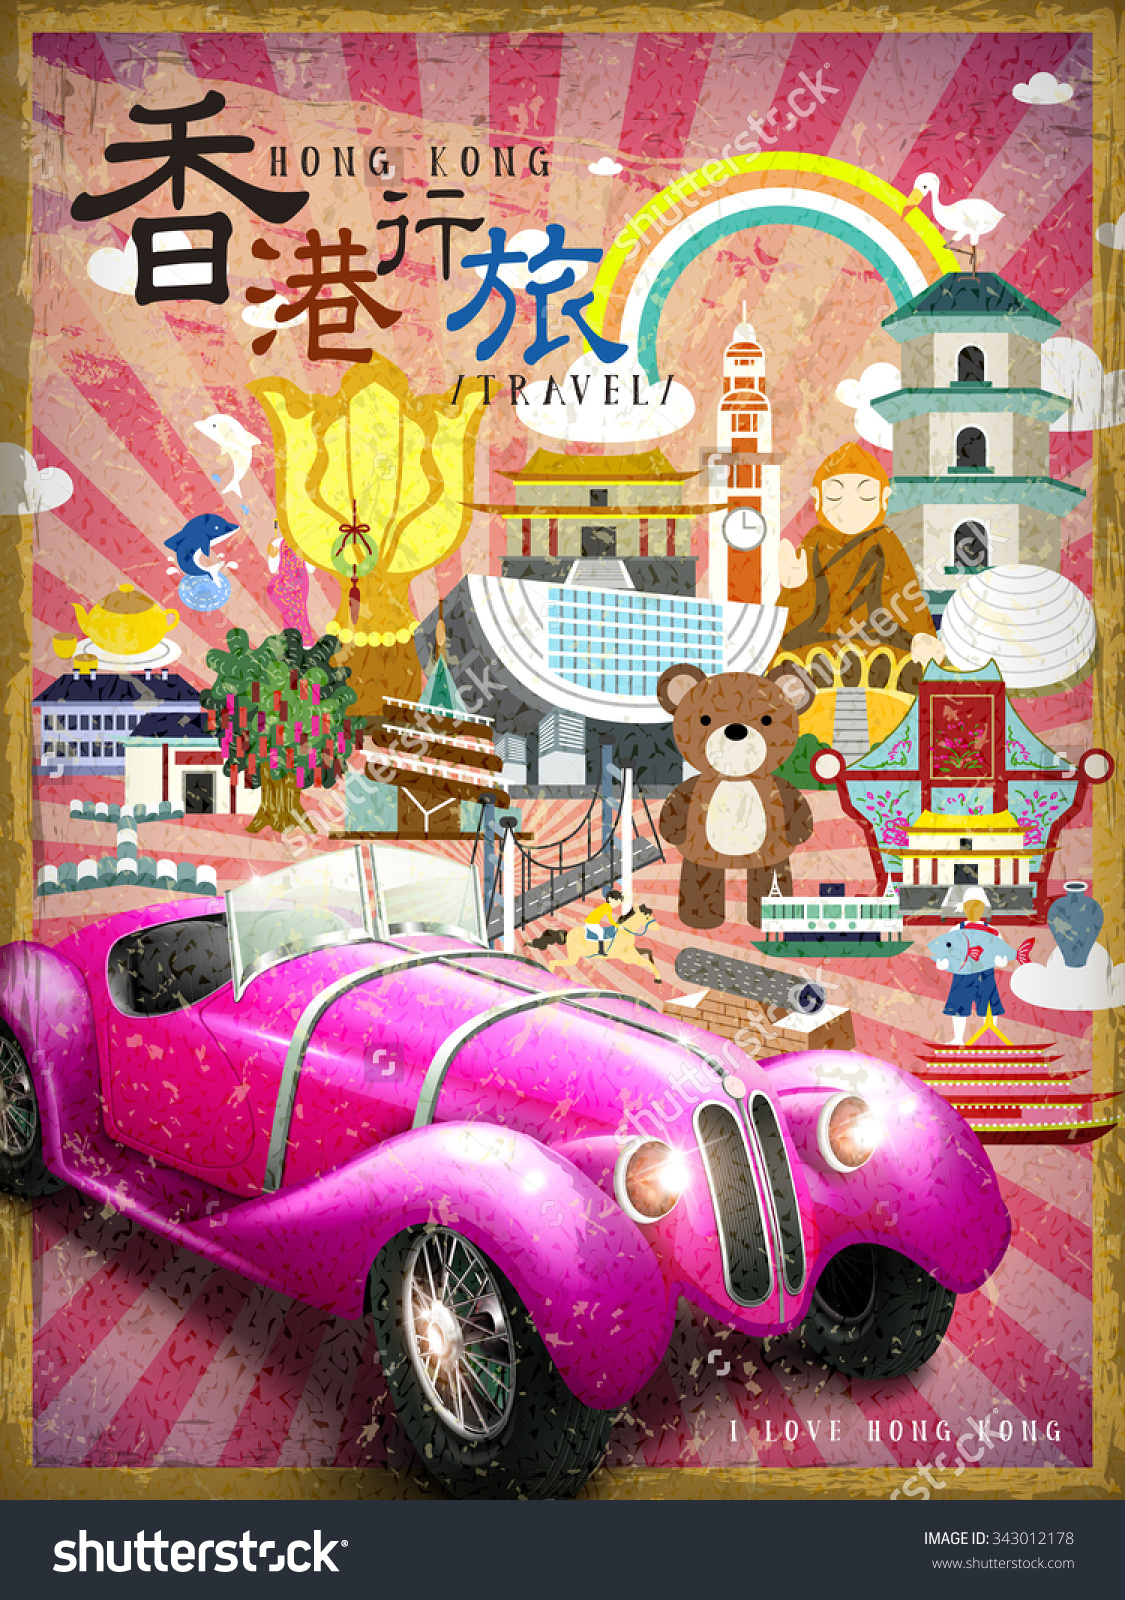 Poster design hong kong - Hong Kong Travel Poster Design With Attractive Car The Upper Left Title Is Hong Kong